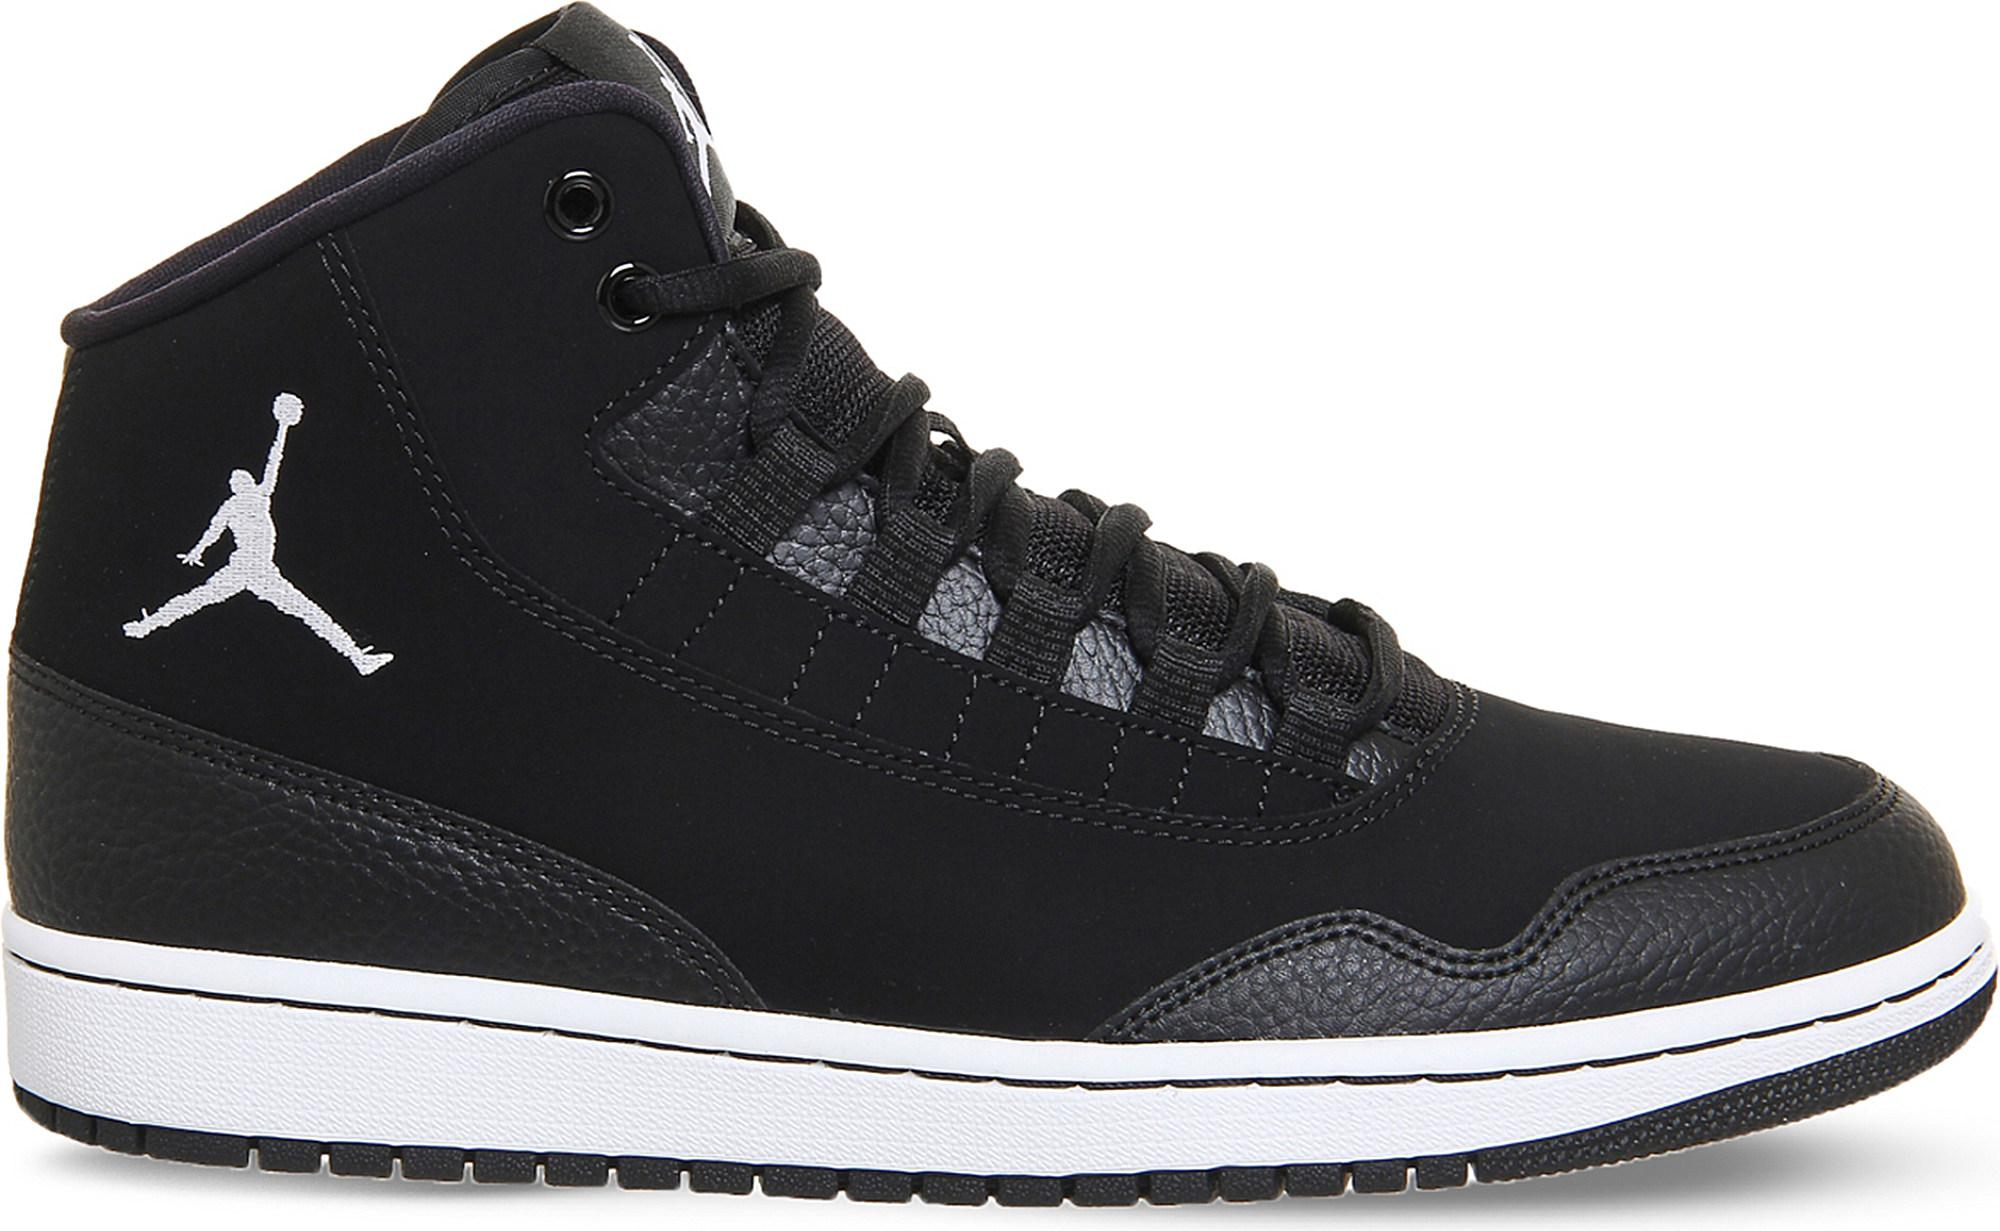 pretty nice 15c14 1a83b Nike Jordan Executive Leather High-top Trainers in Black for Men - Lyst